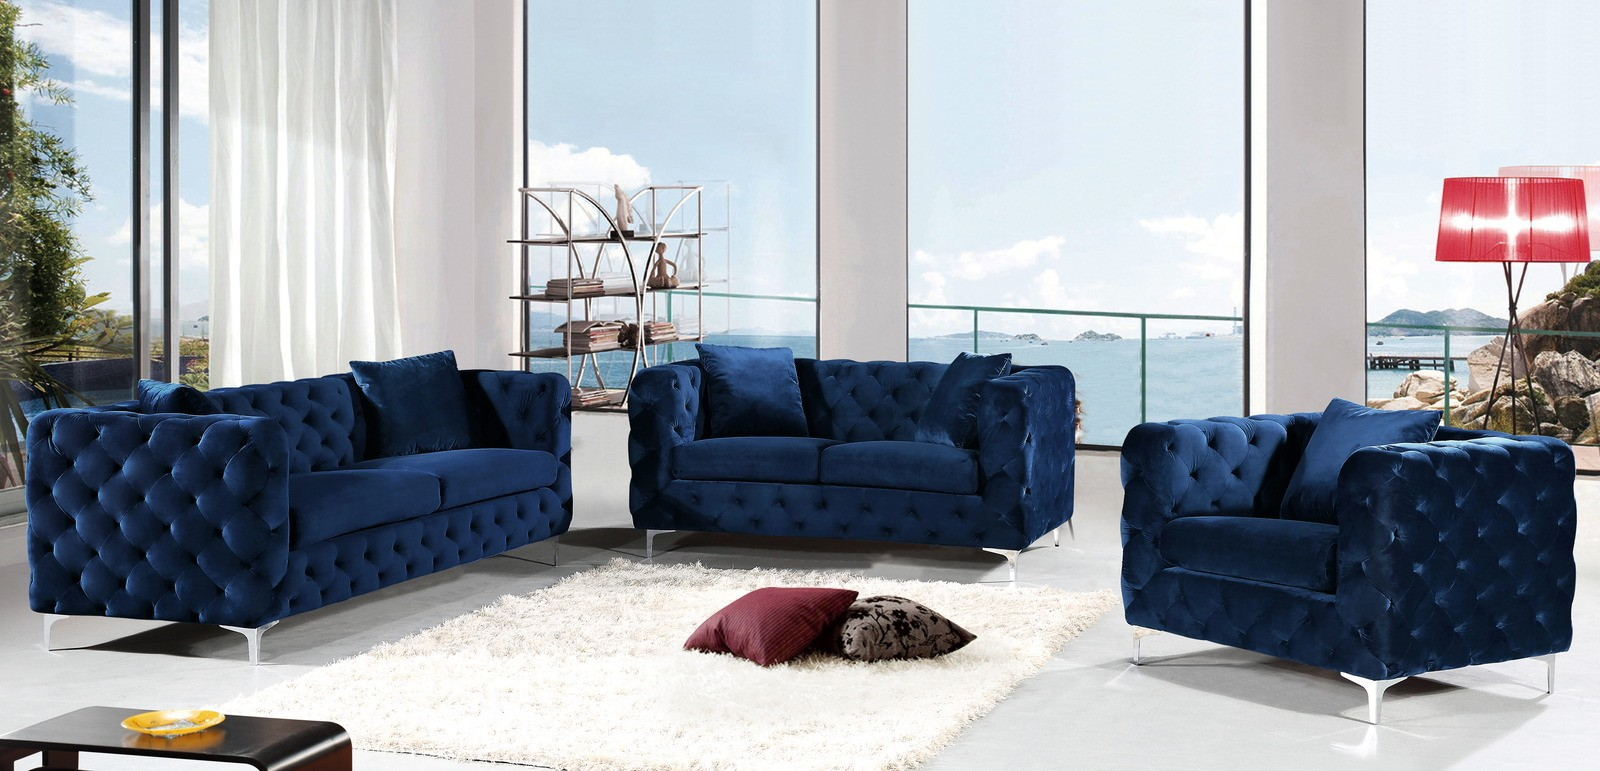 Meridian scarlett velvet 2 piece living room set in navy media gallery